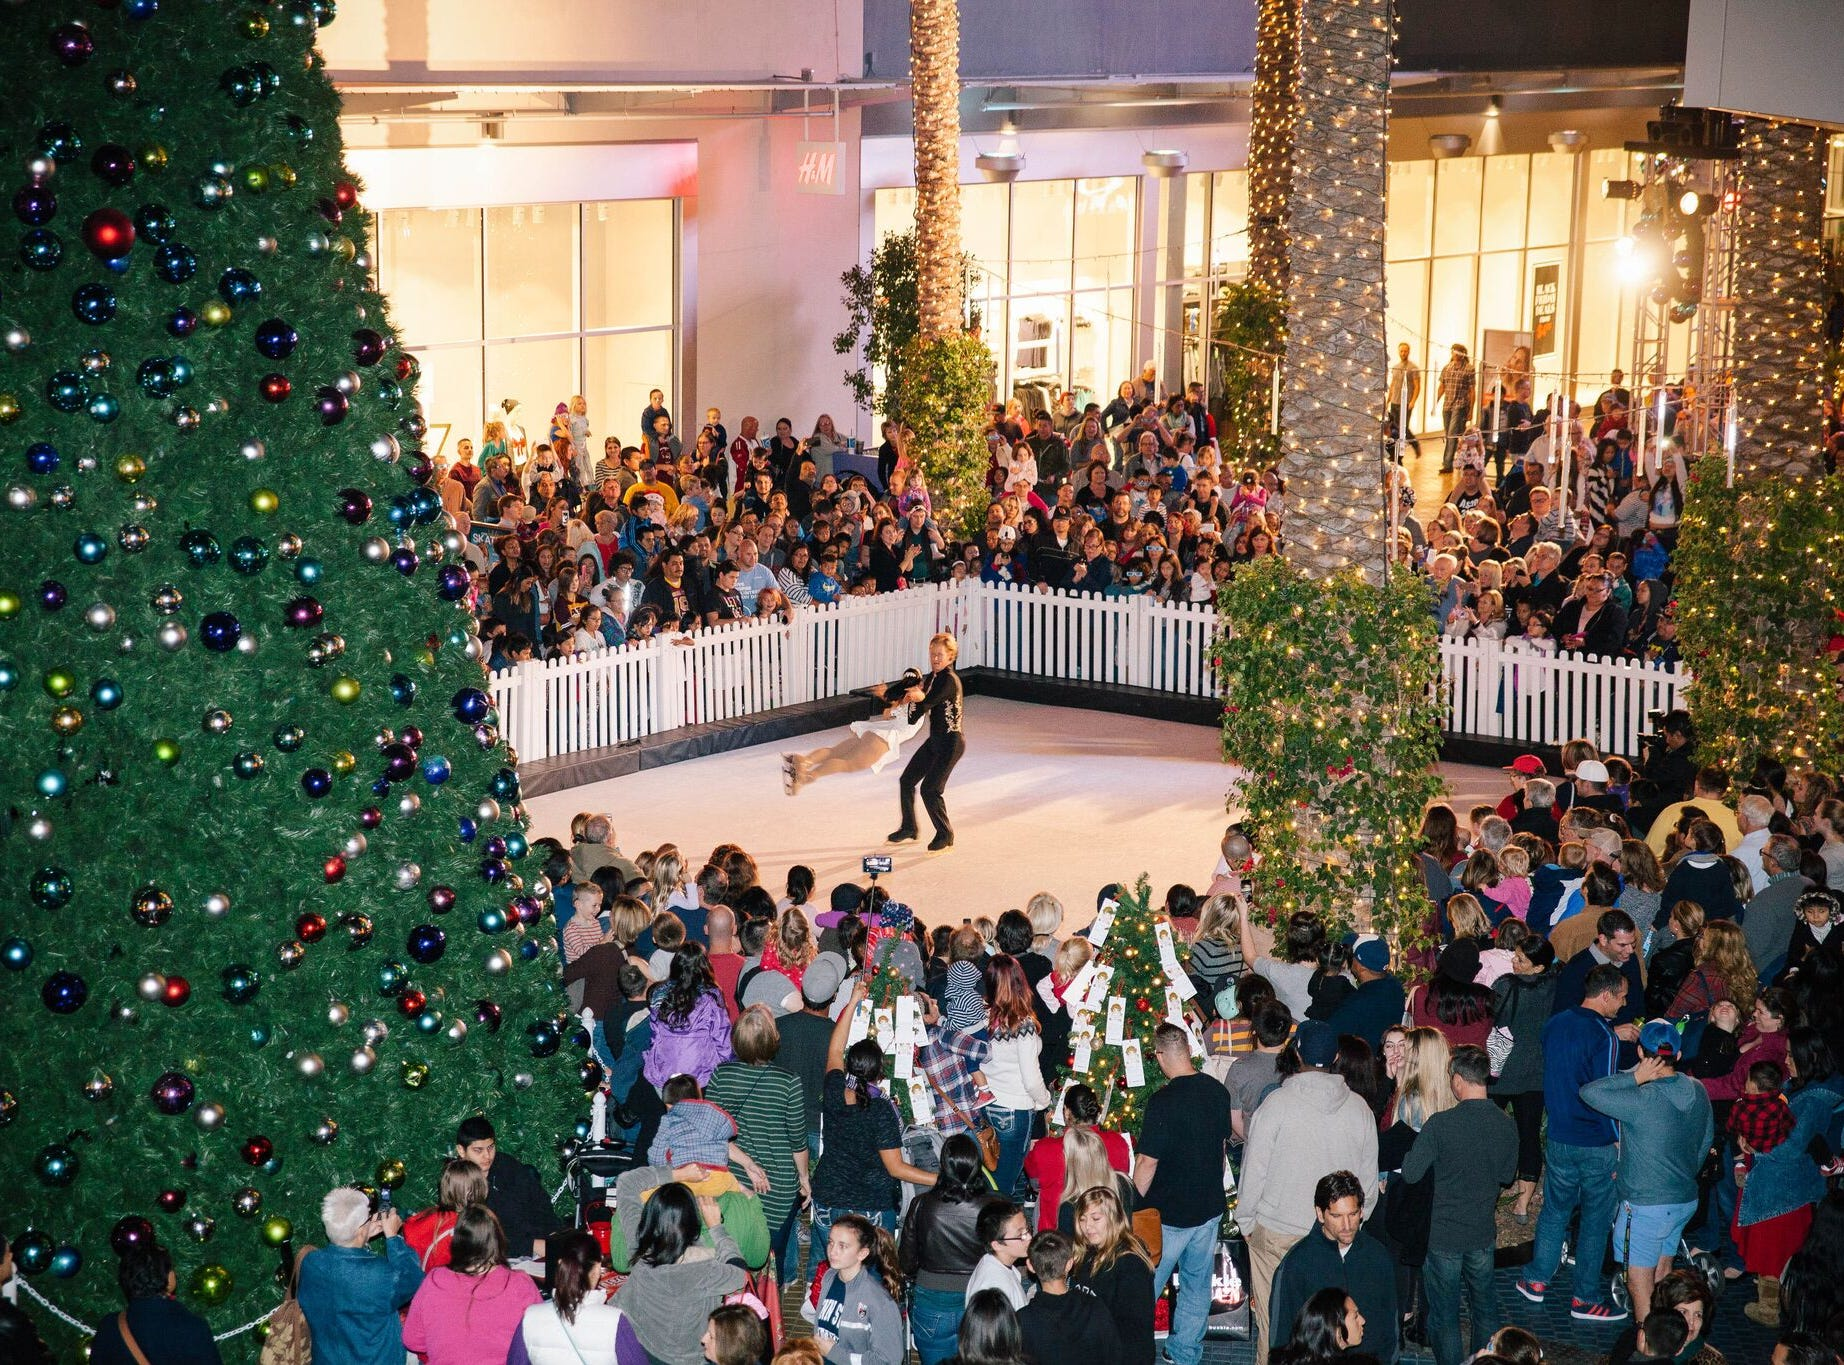 The ice skating rink and festivities at Tempe marketplace during the holiday season.